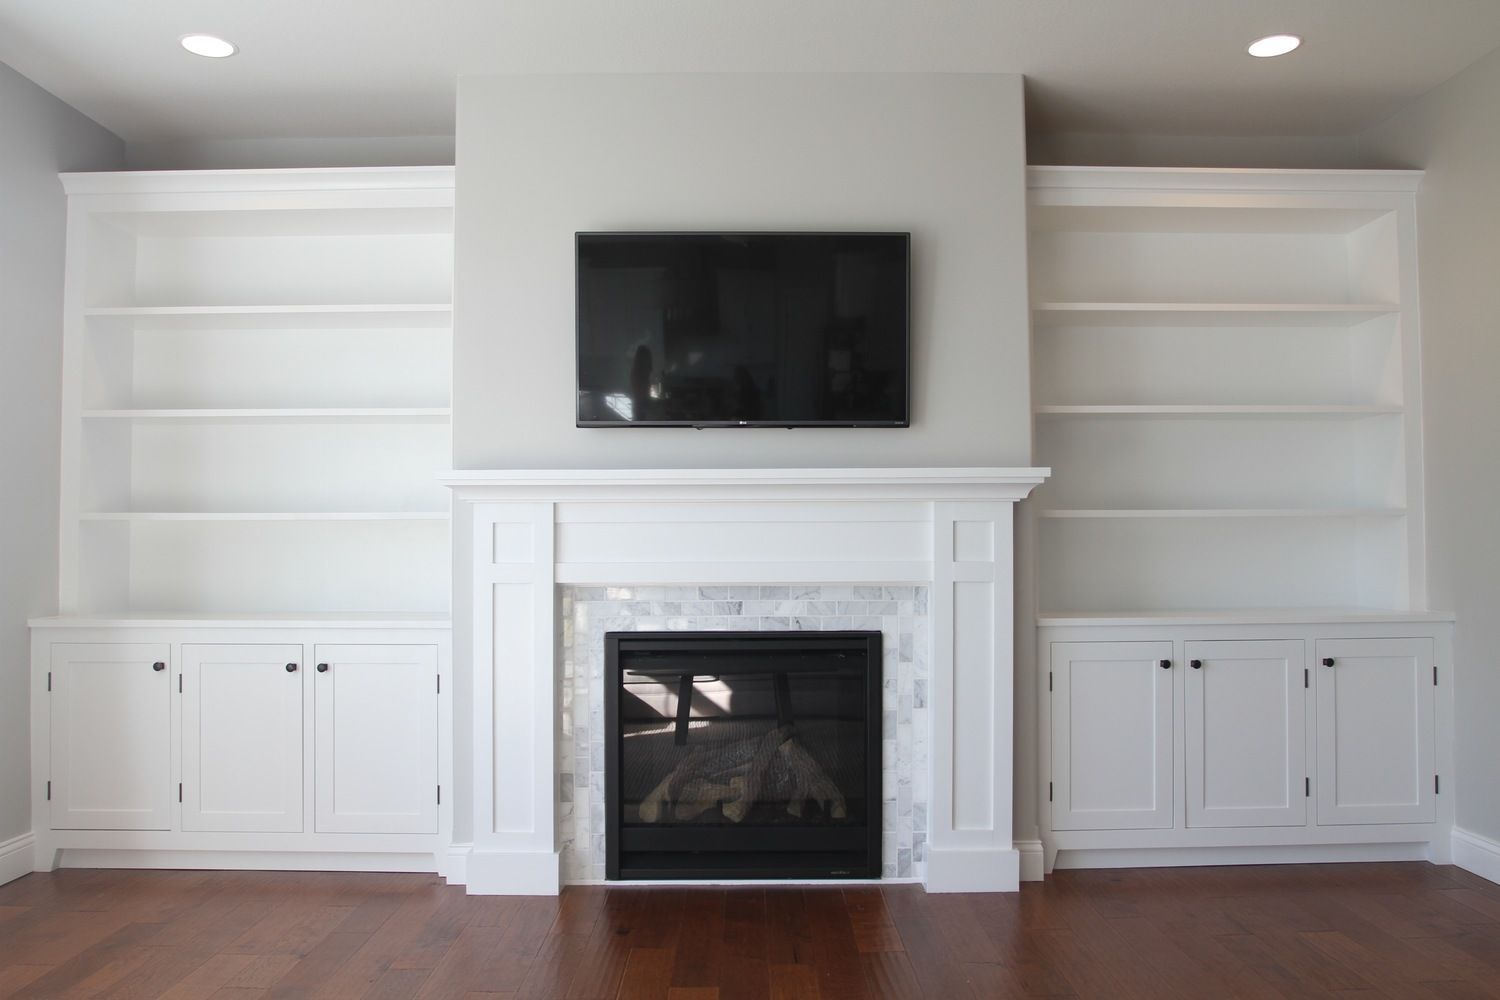 How to Build a Built-in Part 1 of 3 - The Cabinets   Living rooms ...